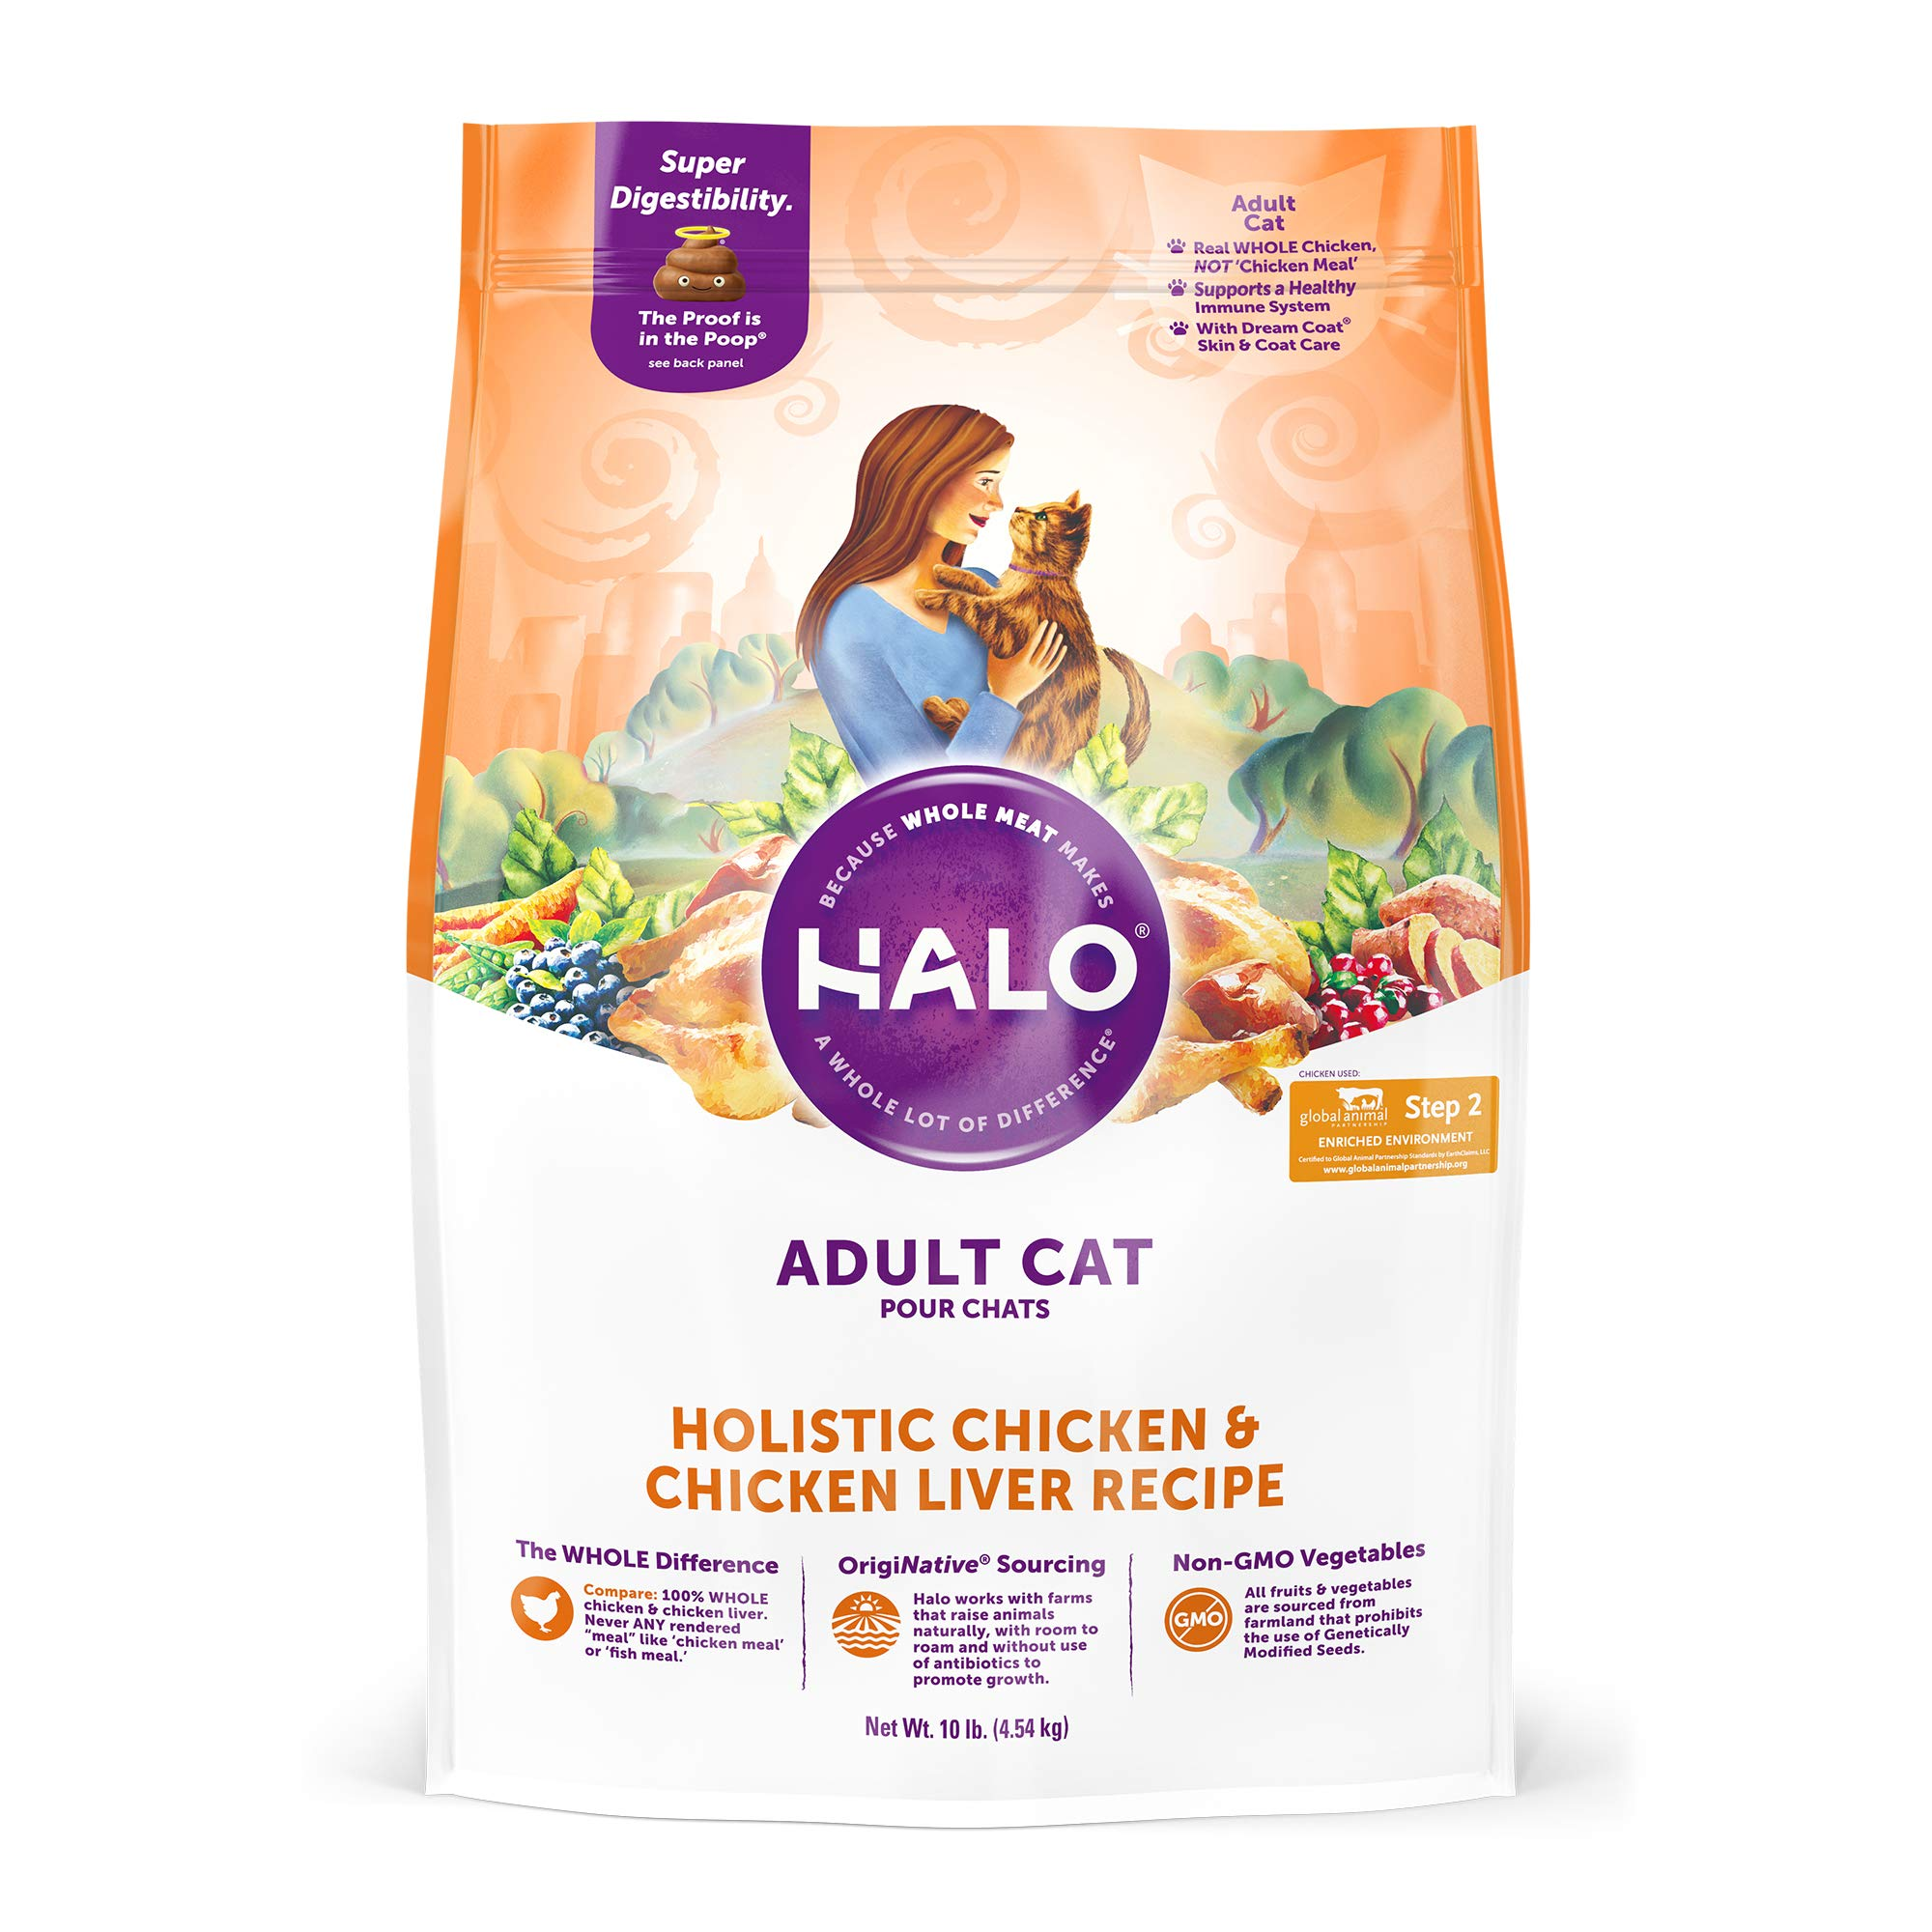 HALO, Purely for Pets 35220 Natural Dry Cat Food, Chicken & Chicken Liver Recipe, 10 lb Bag, Brown by HALO